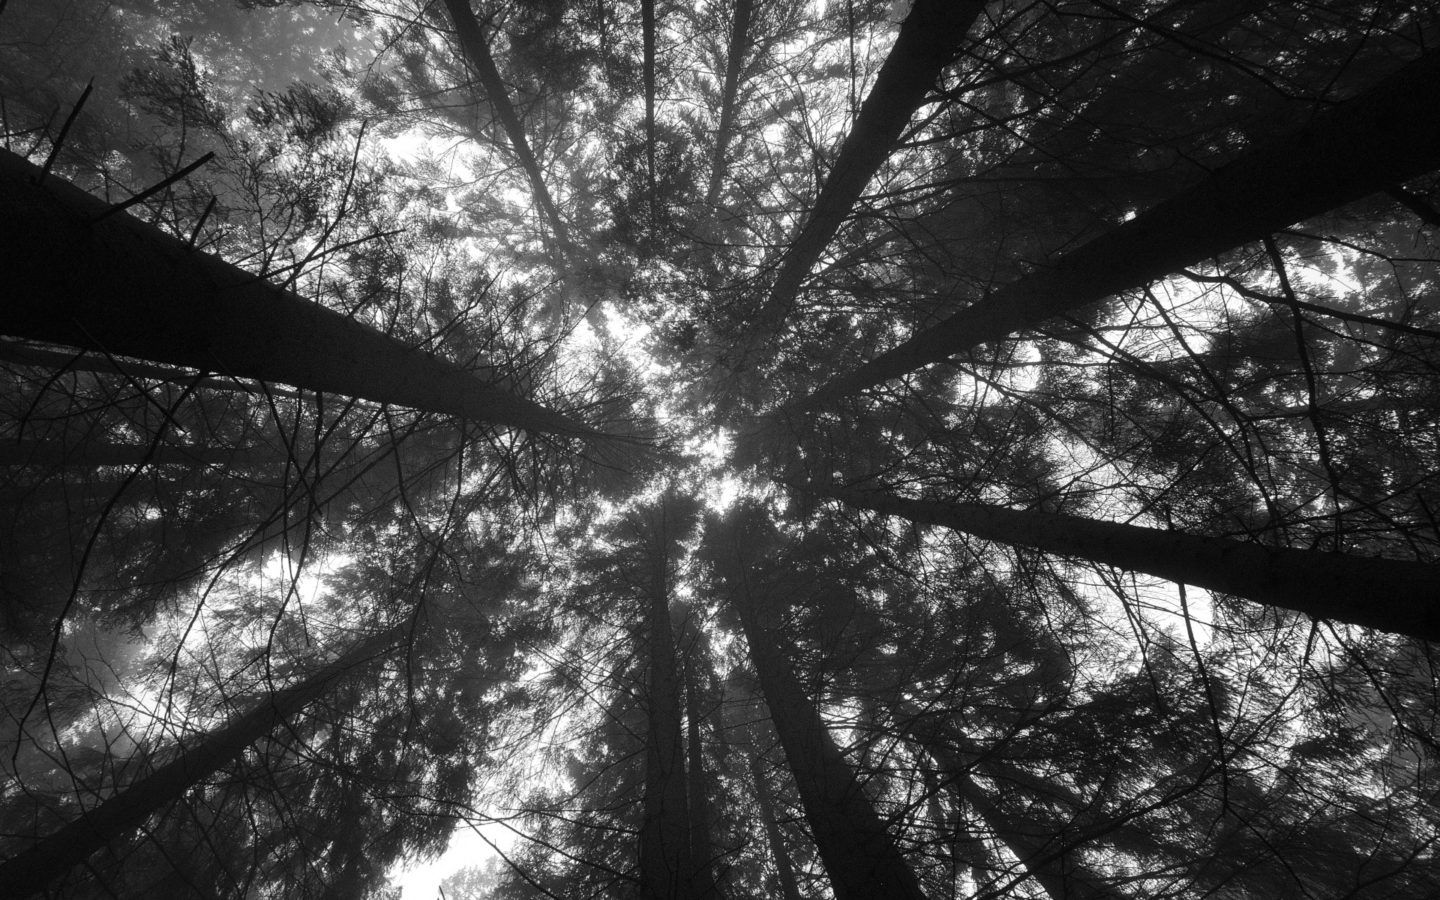 Forest Perspective Black and White WallpapersWebs